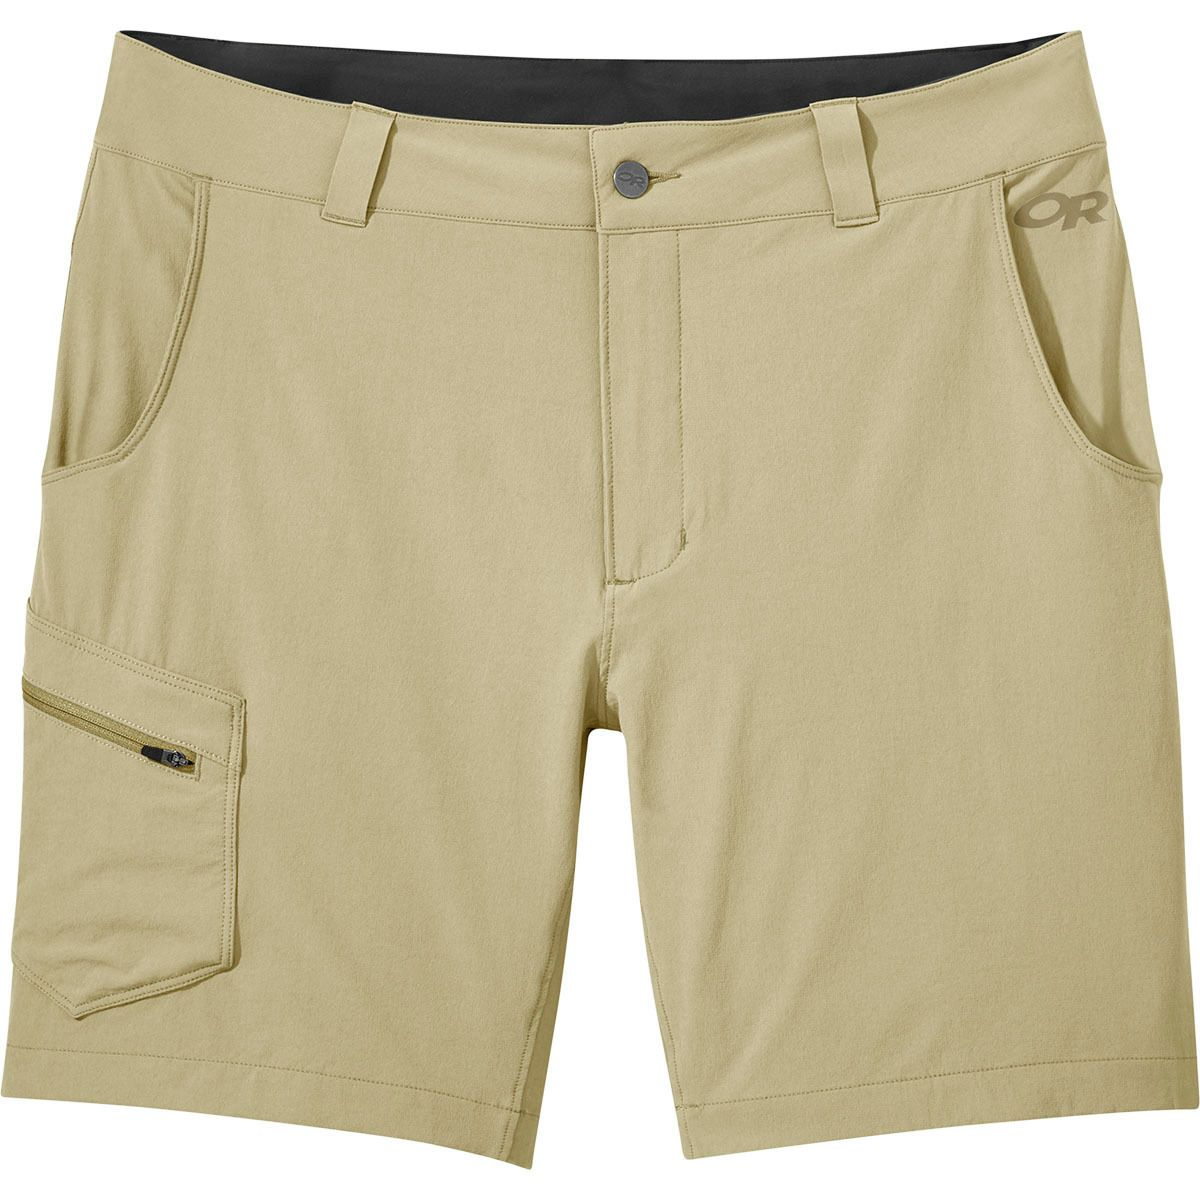 Outdoor Research Ferrosi Shorts